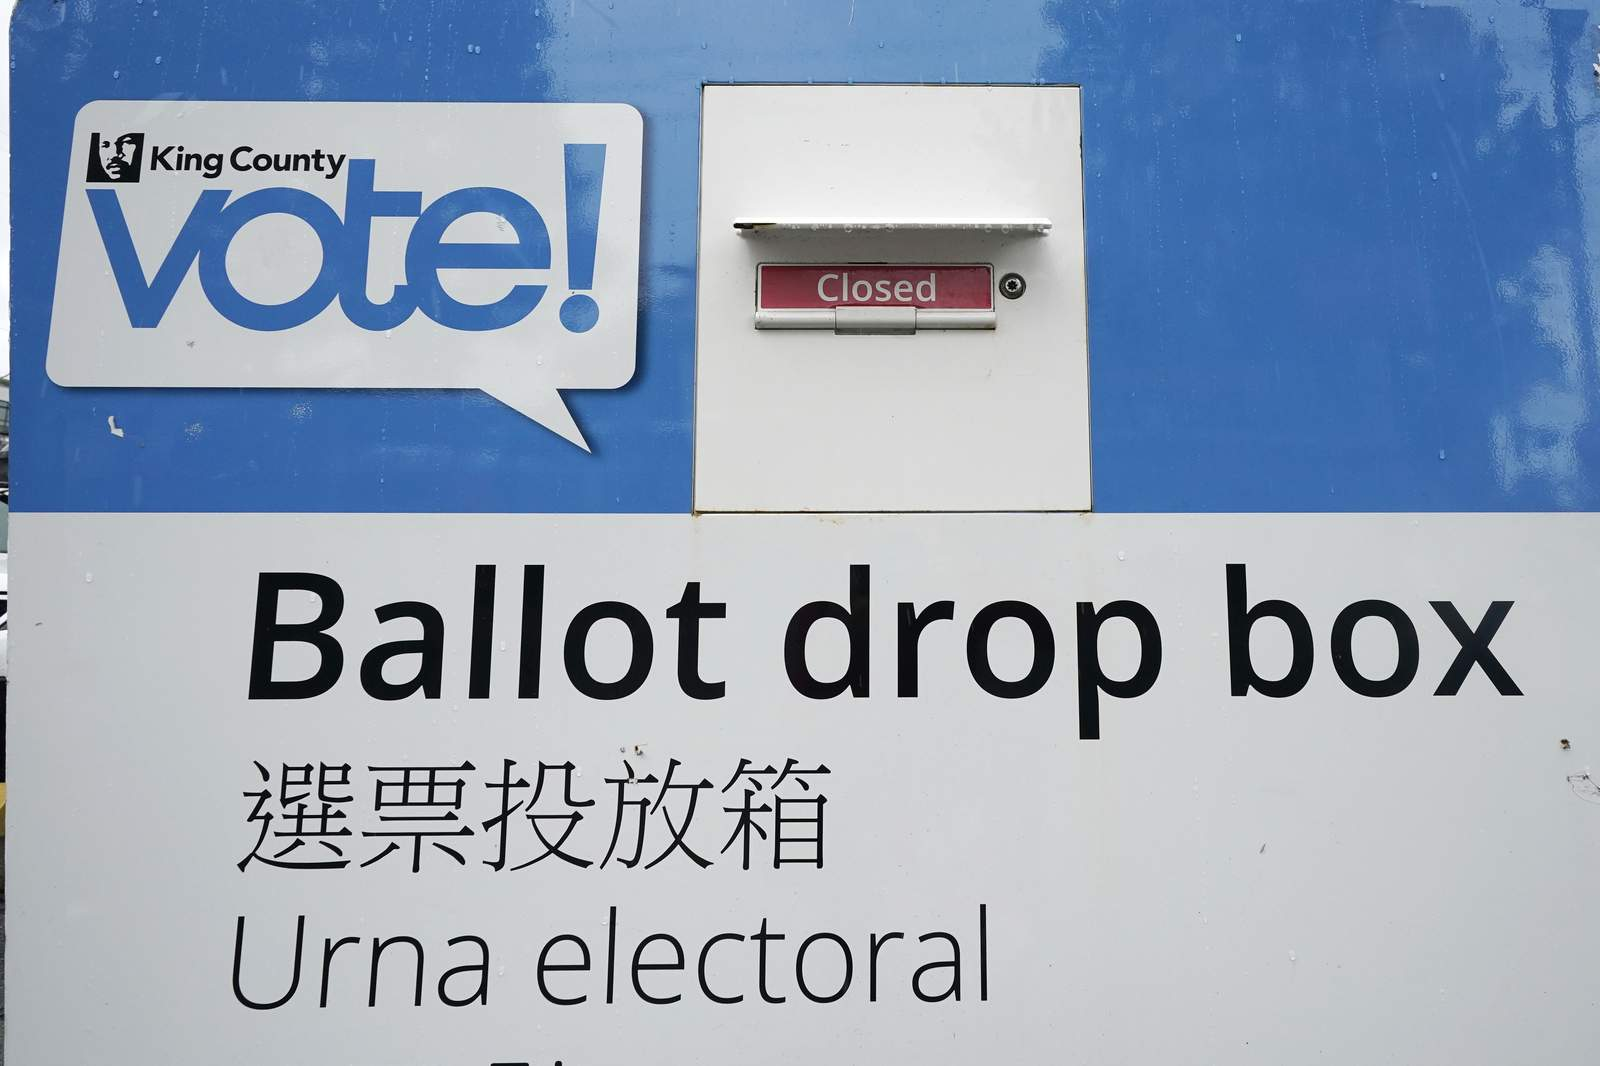 Are absentee votes and mail-in votes different?...